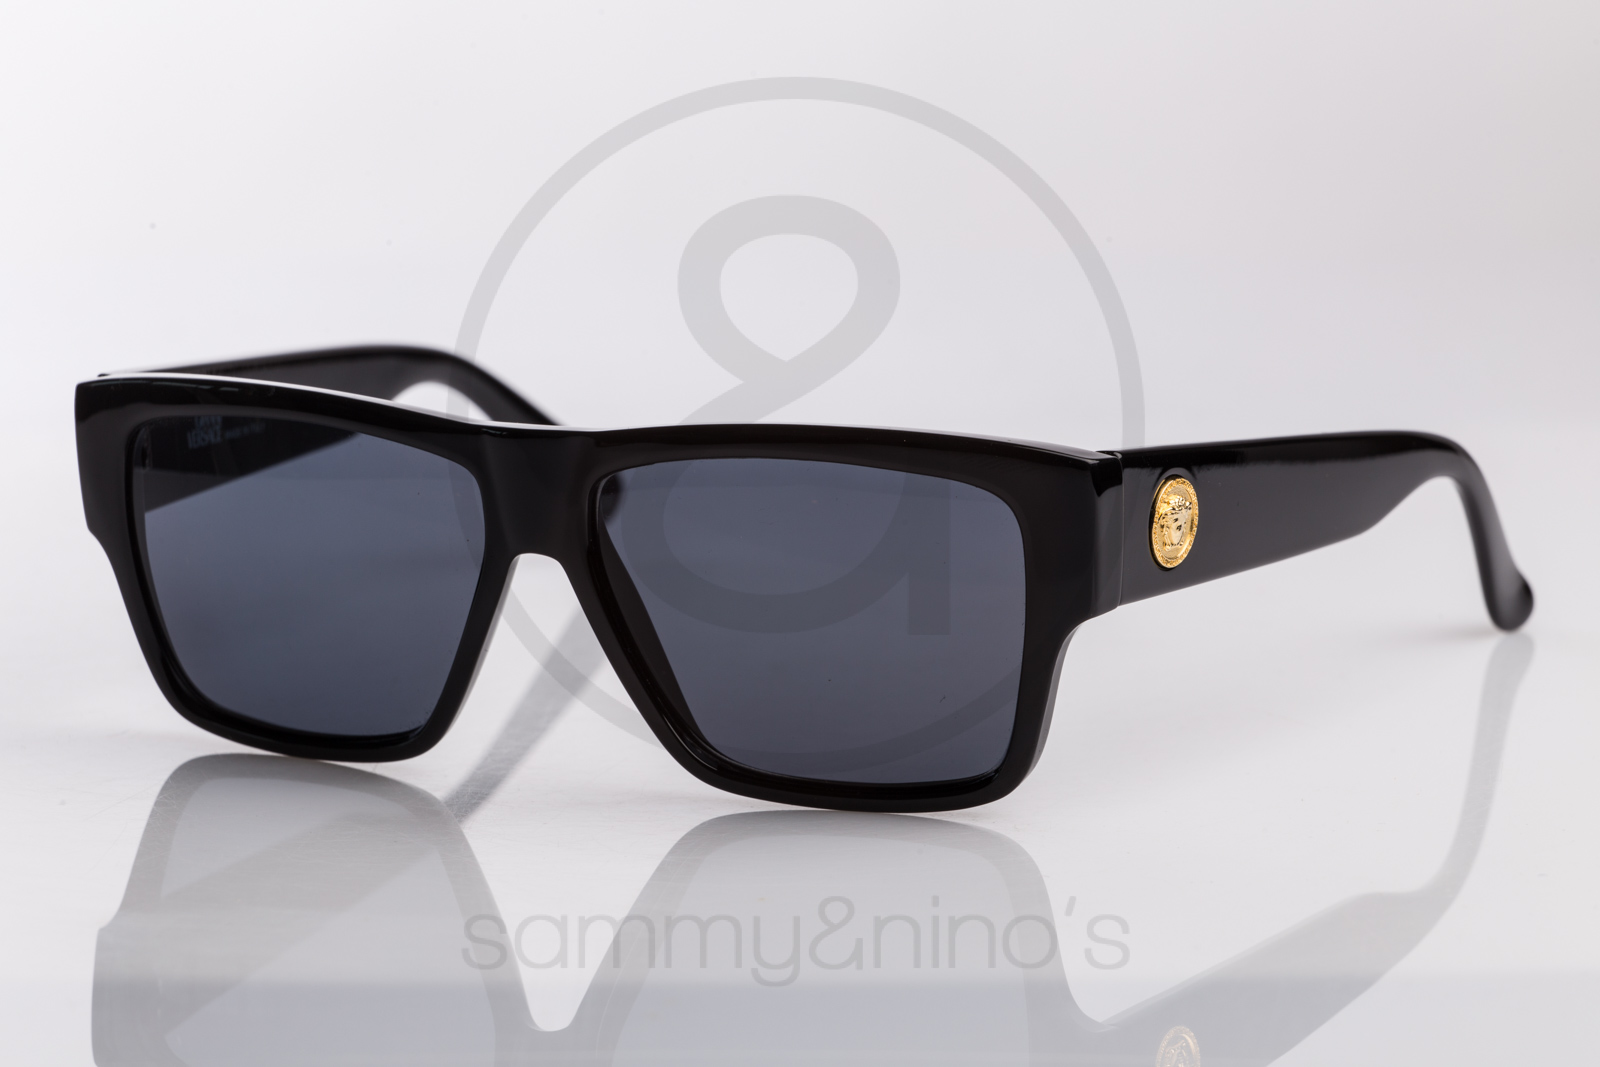 58358863f77ab Previous  Next. HomeSOLD OUTGianni Versace ...